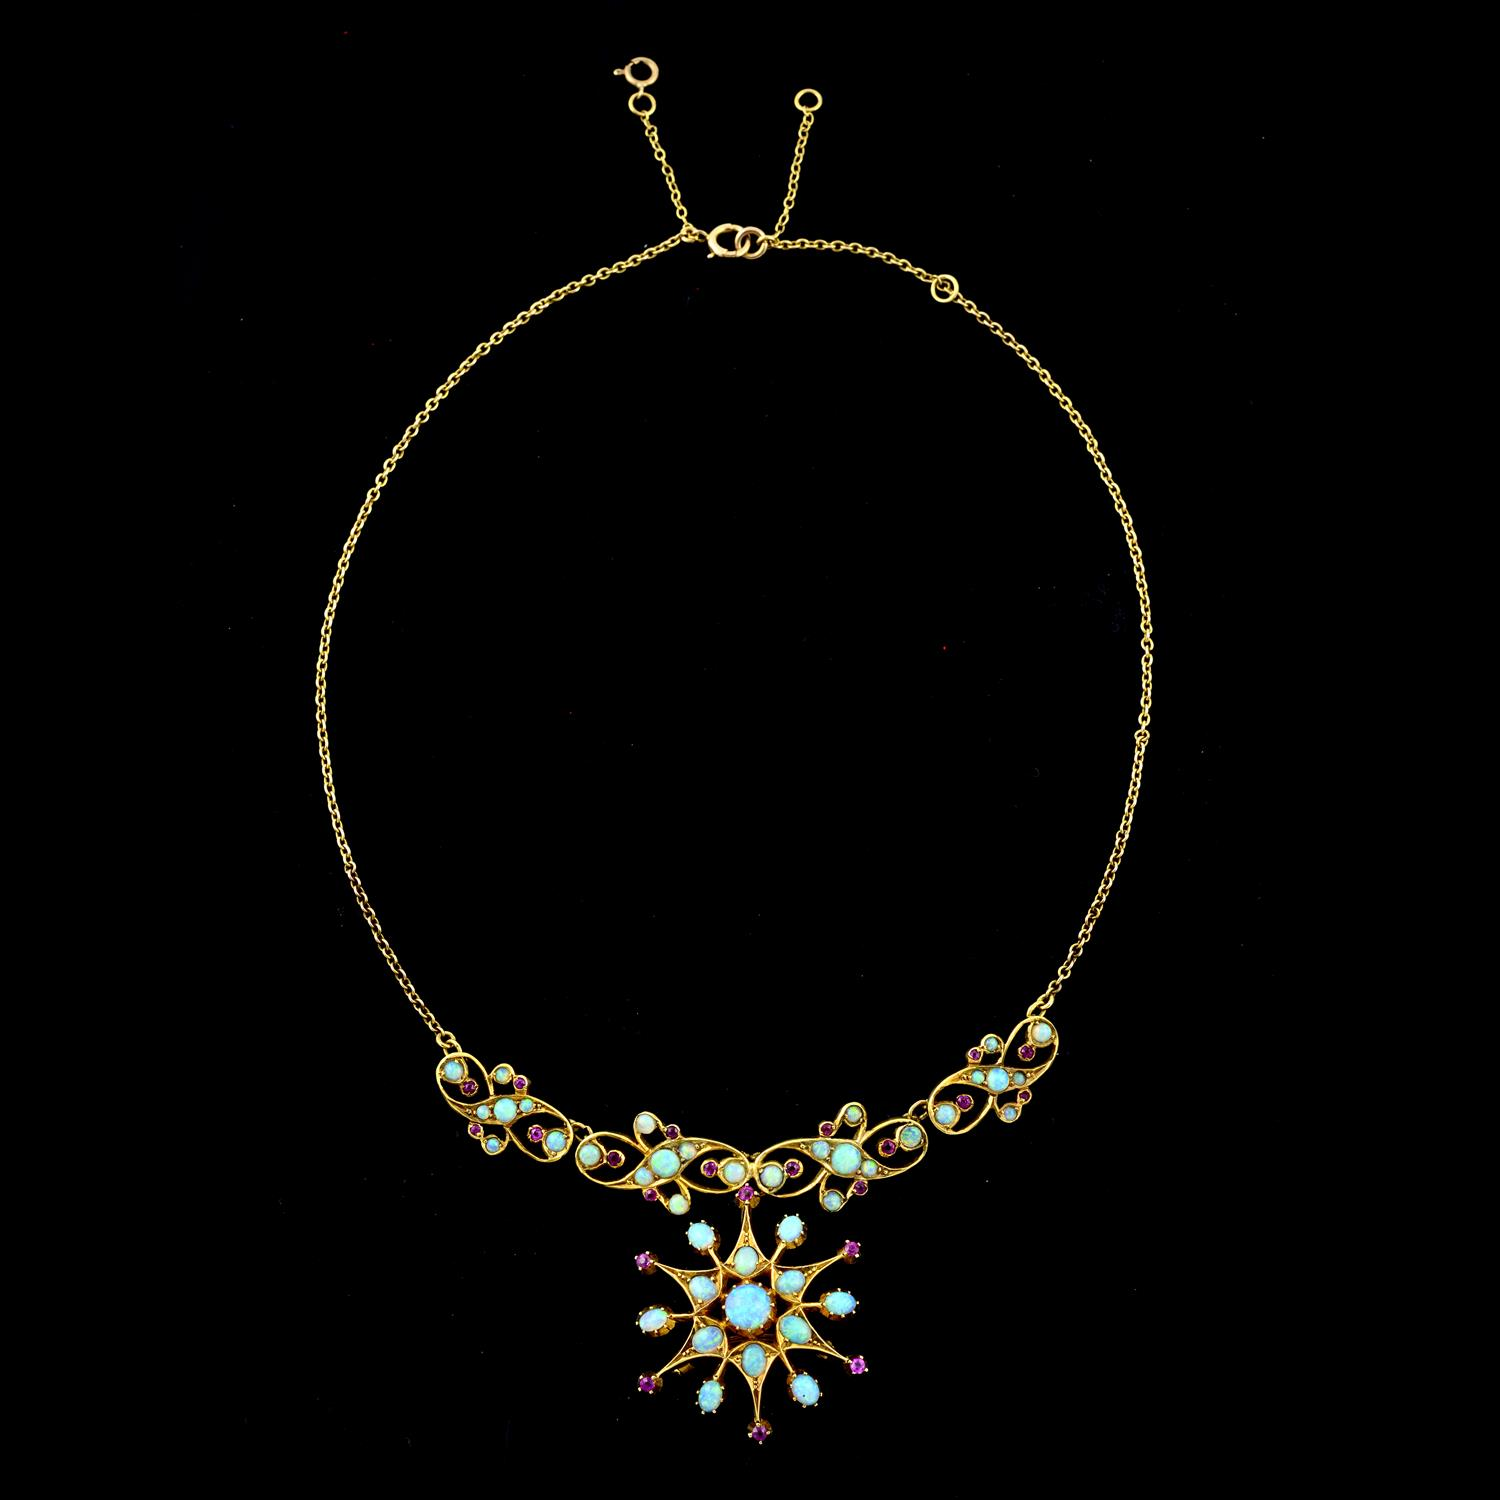 An early 20th century 15ct gold opal and ruby necklace. - Image 3 of 5